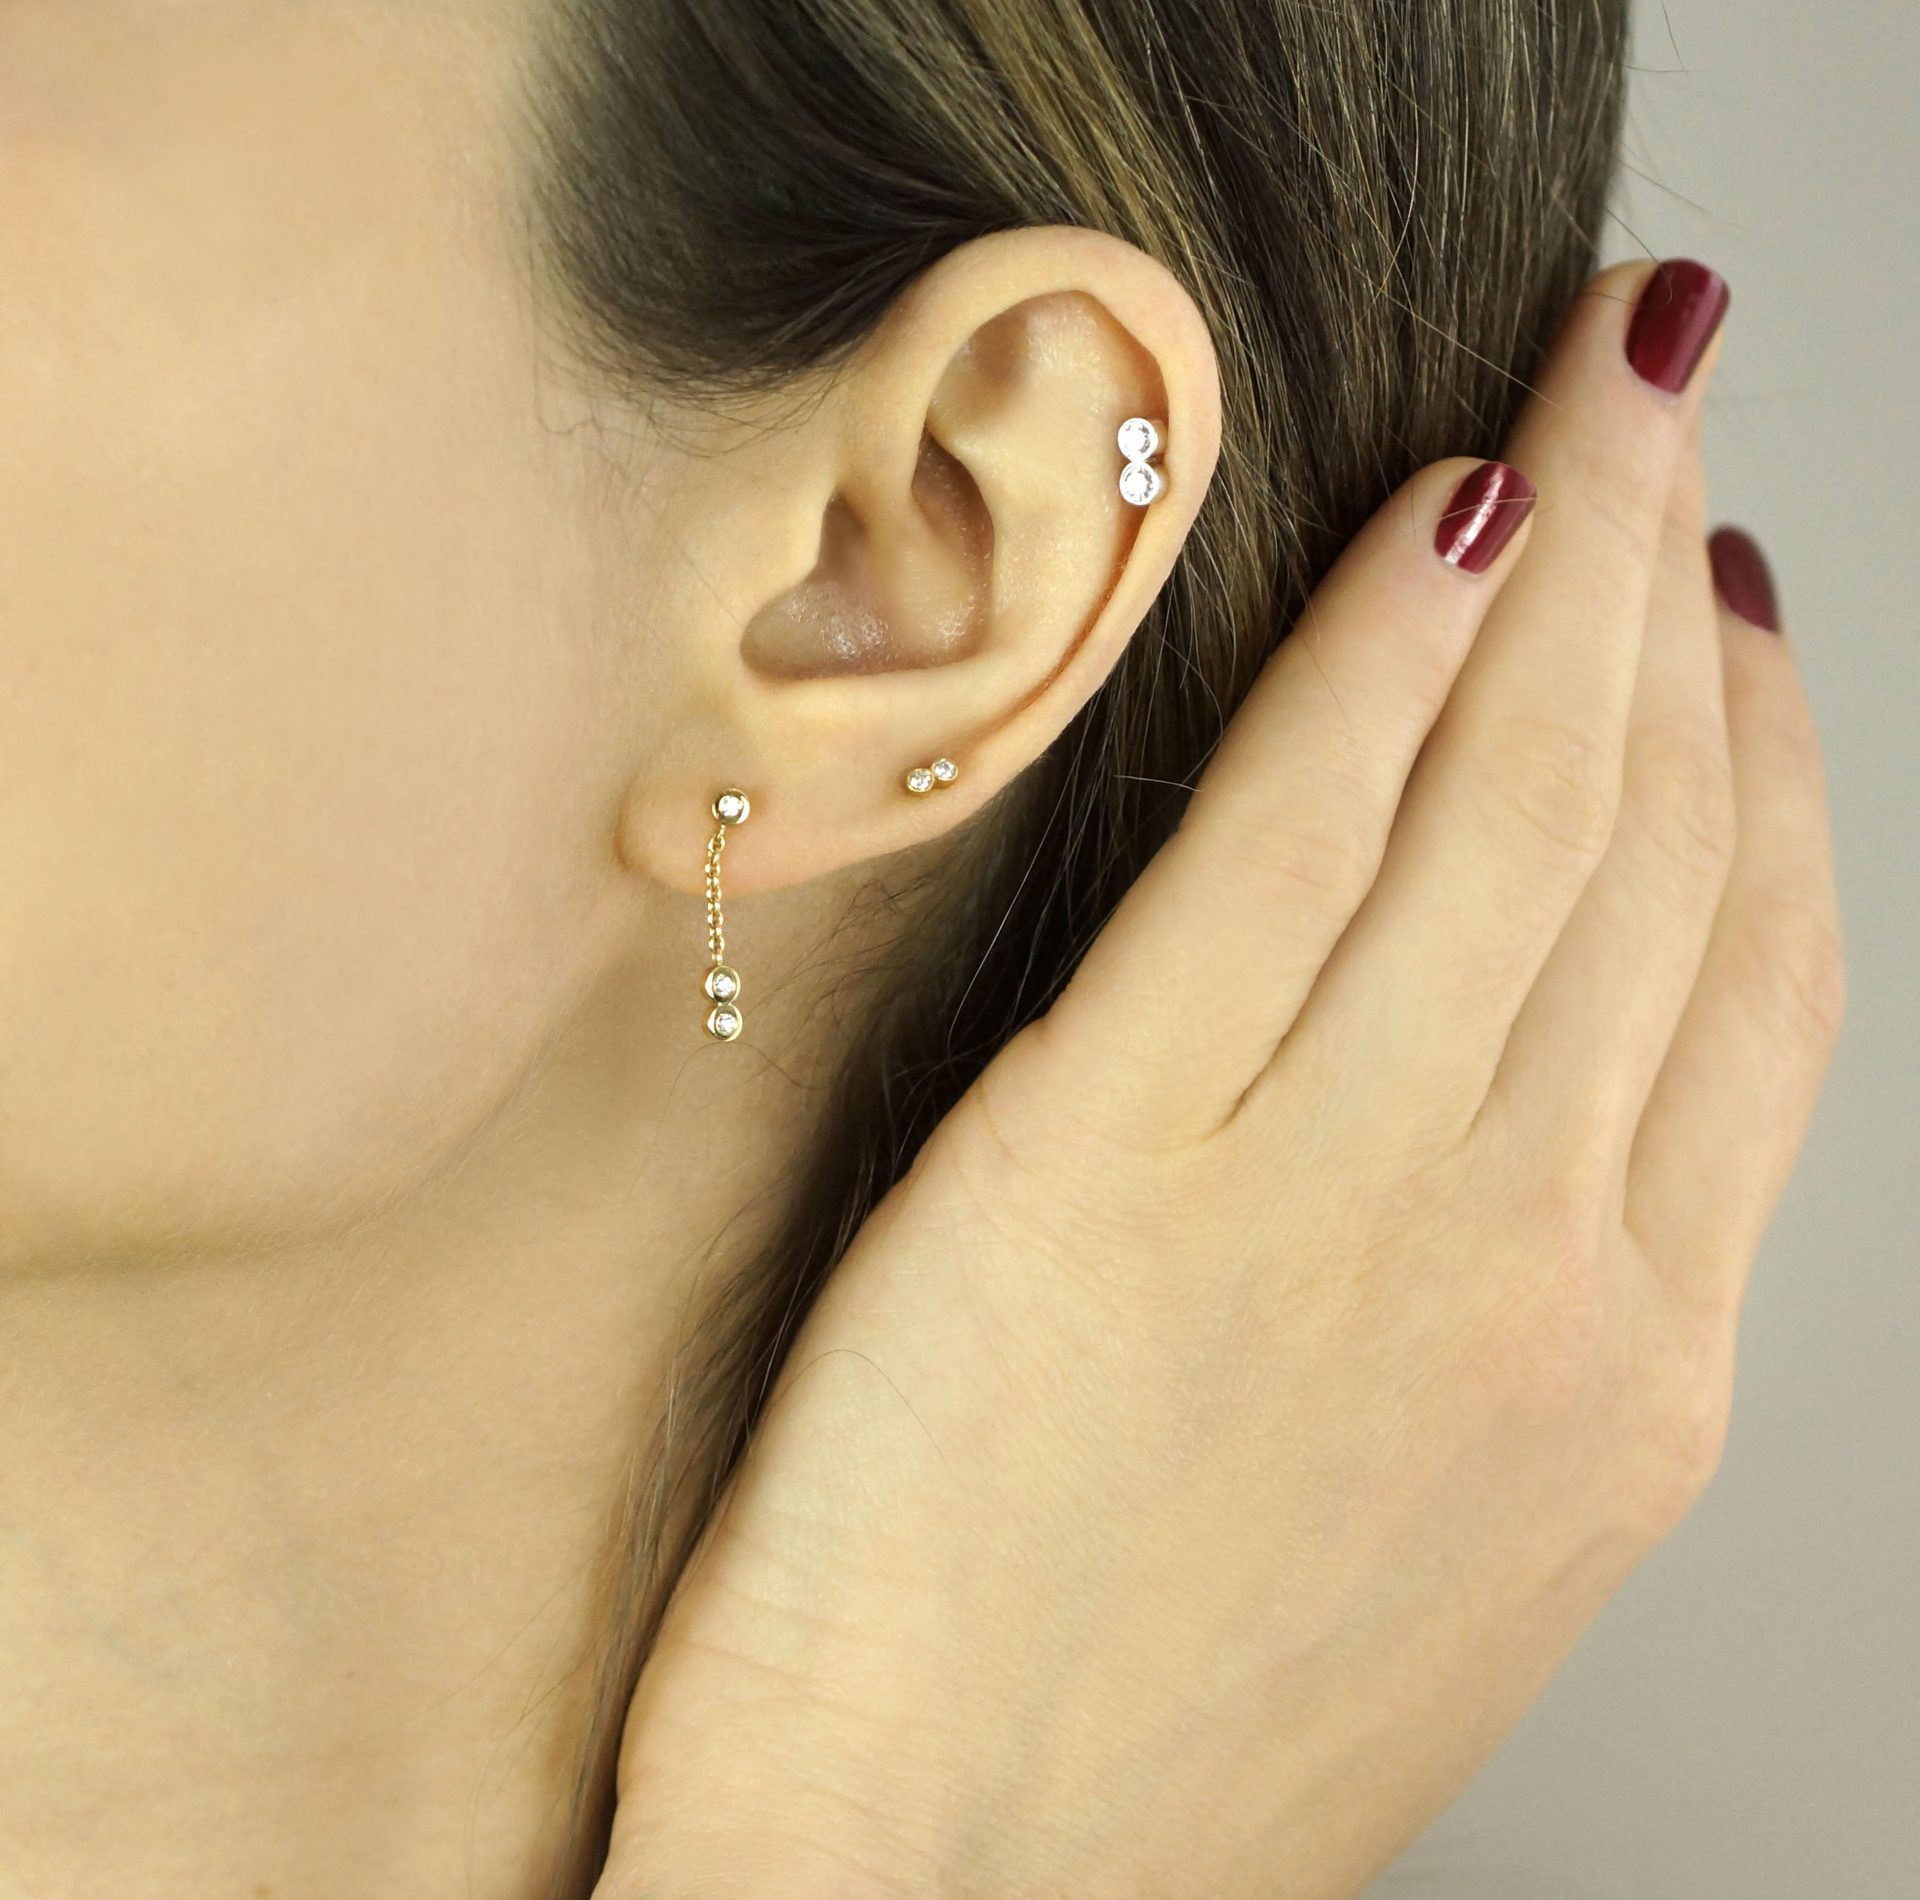 Luxury-18k-Gold-Piercing-Jewellery-in-London-Lena-Cohen-Unique-Designs-Hand-Crafted-By-Master-Goldsmiths